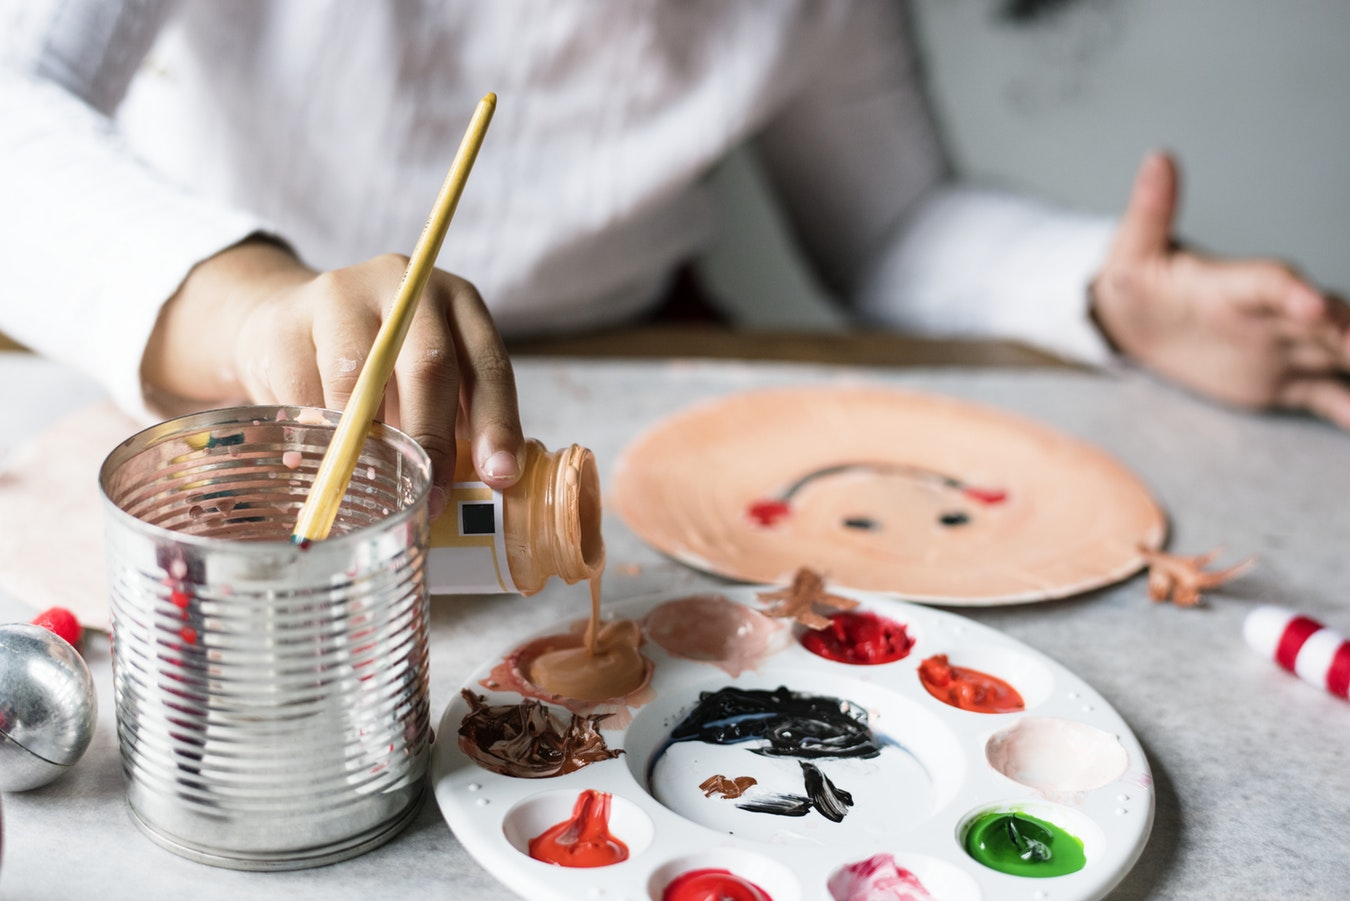 A senior in an assisted living facility painting as a form of expressive art therapy.